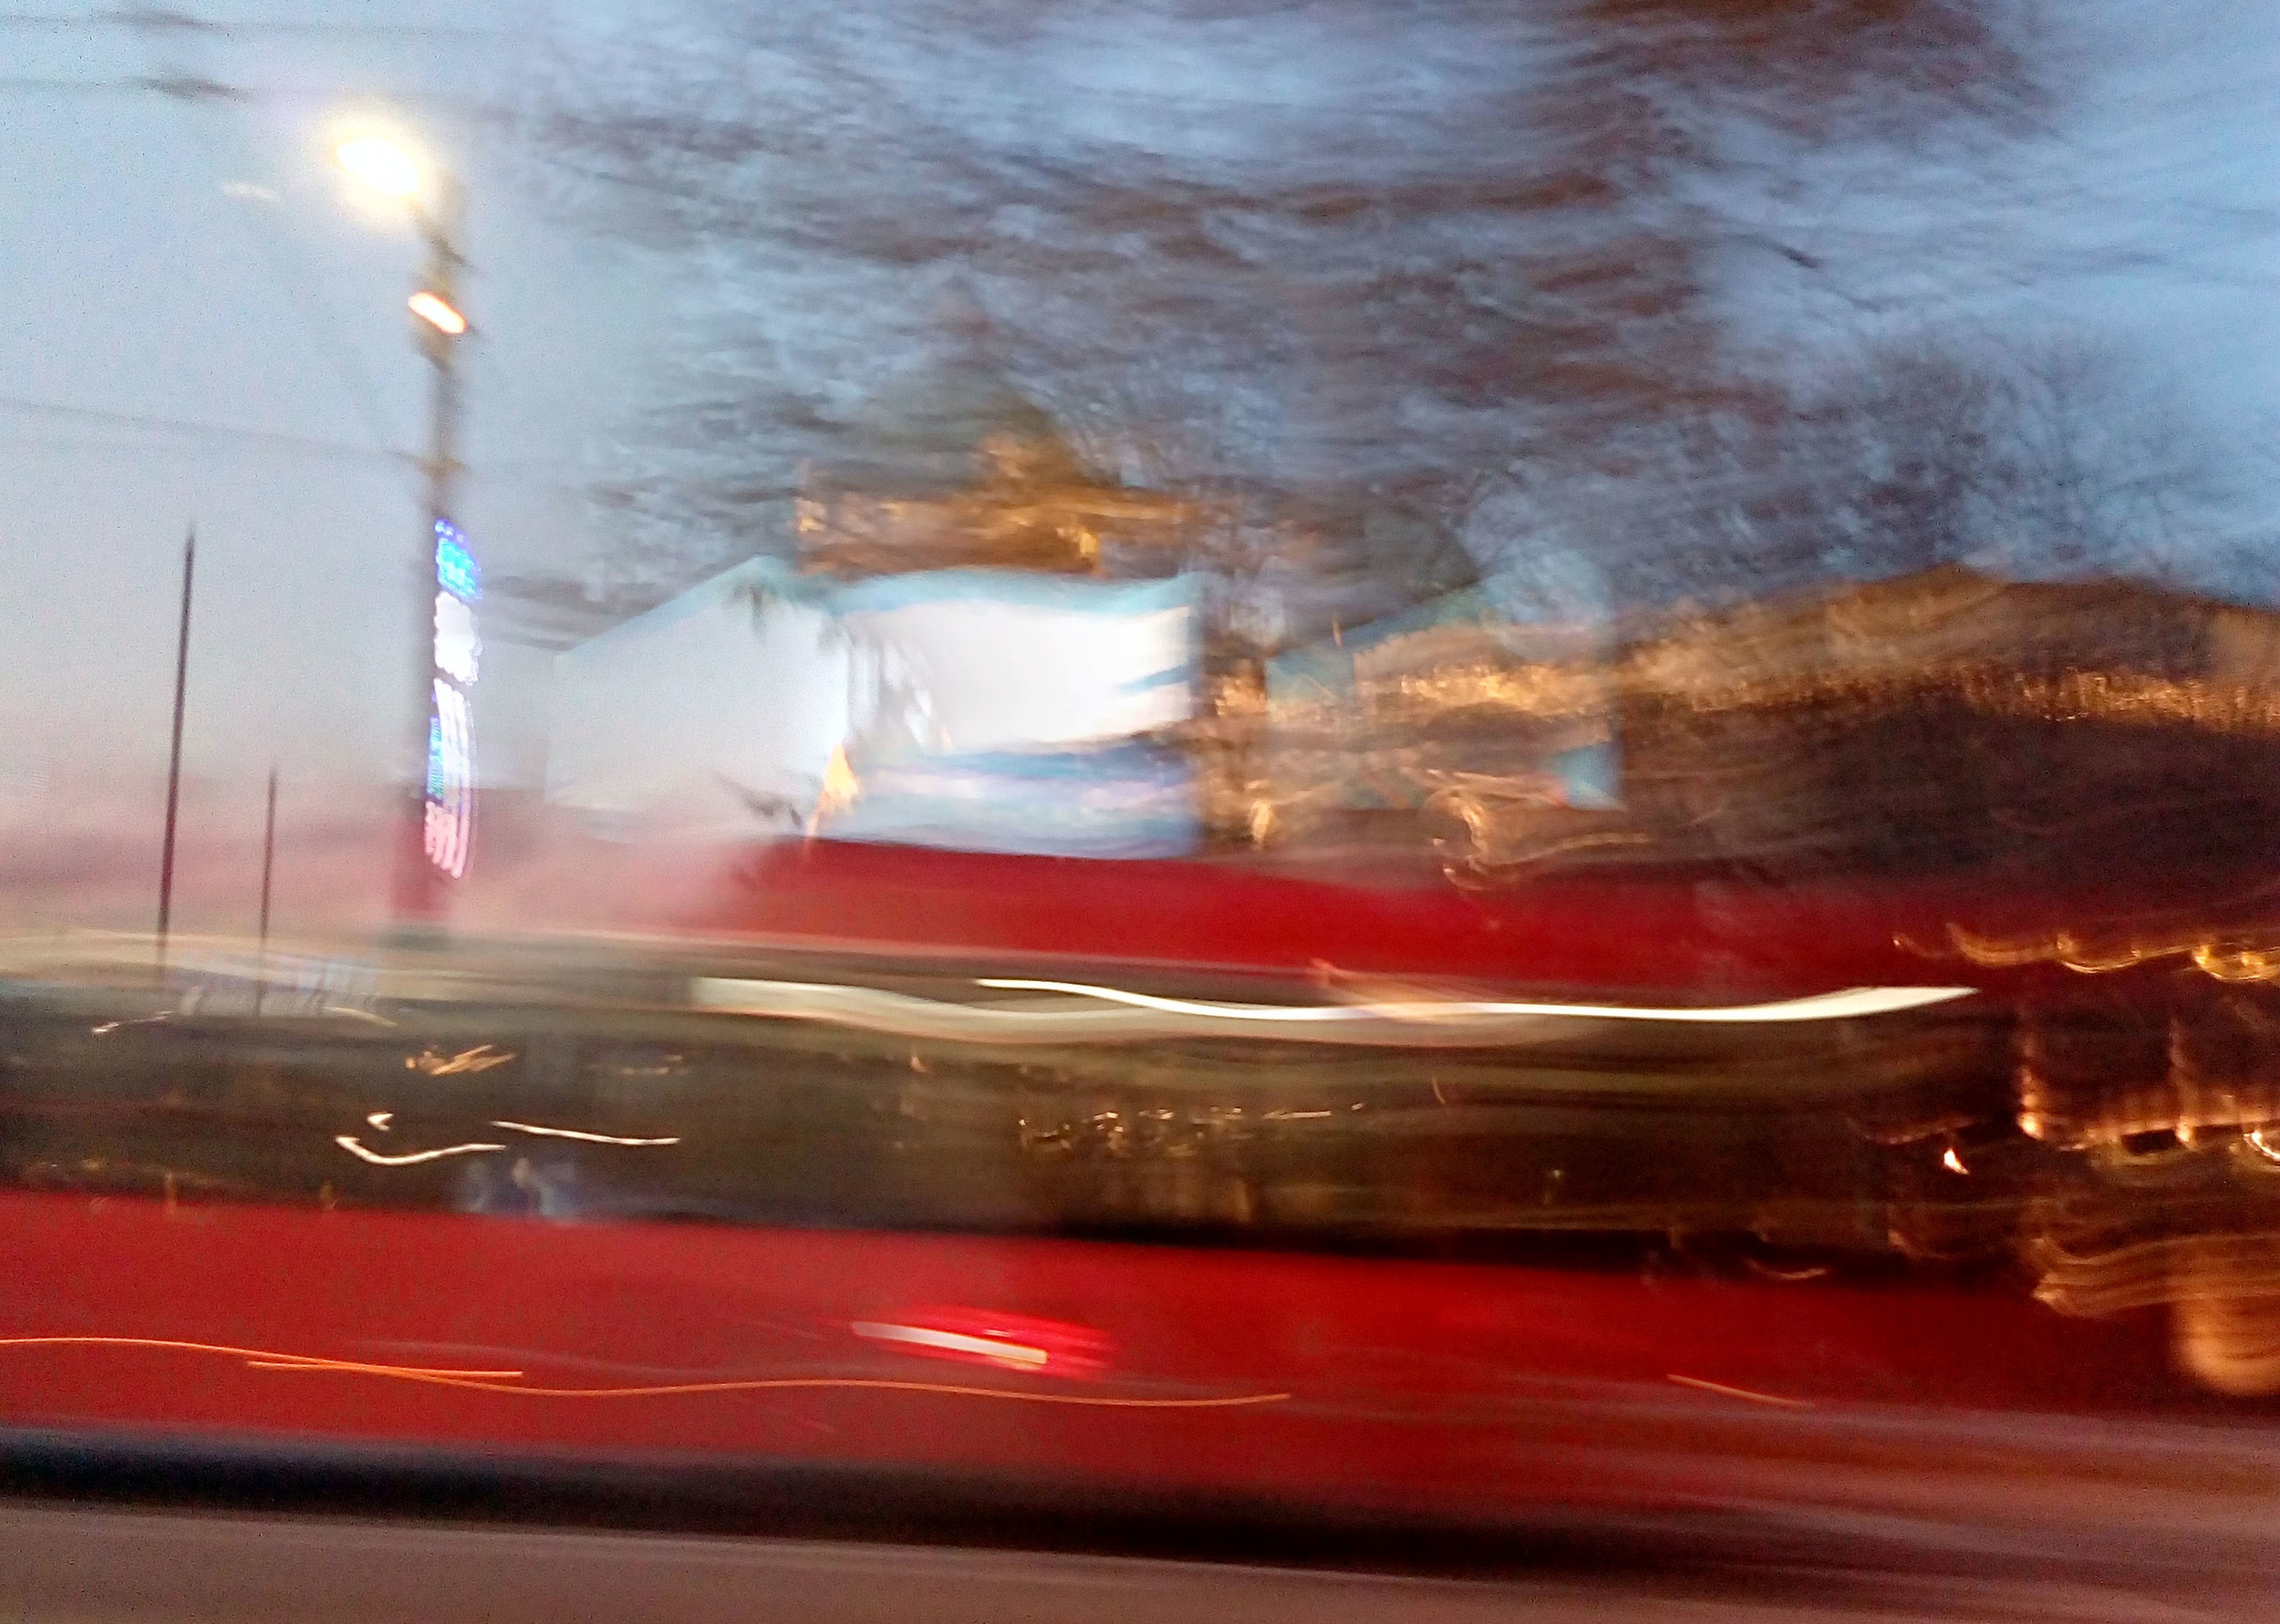 A bus zooming by, photo by Aleks